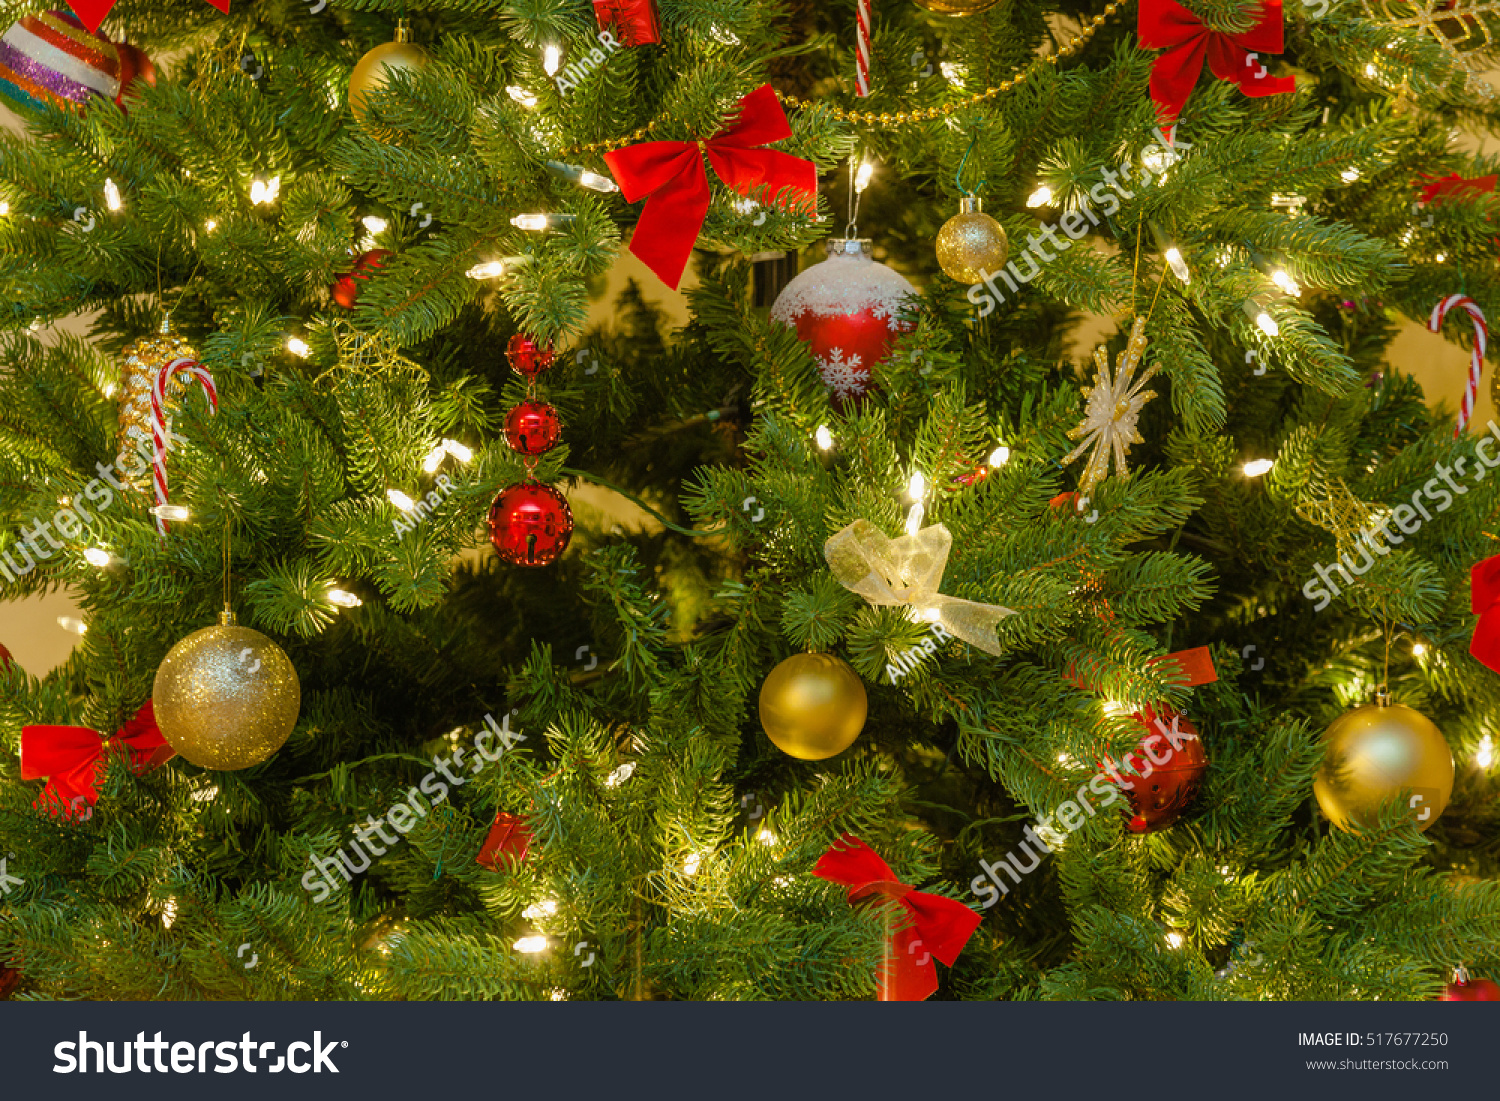 id 517677250 - Classic Christmas Tree Decorations